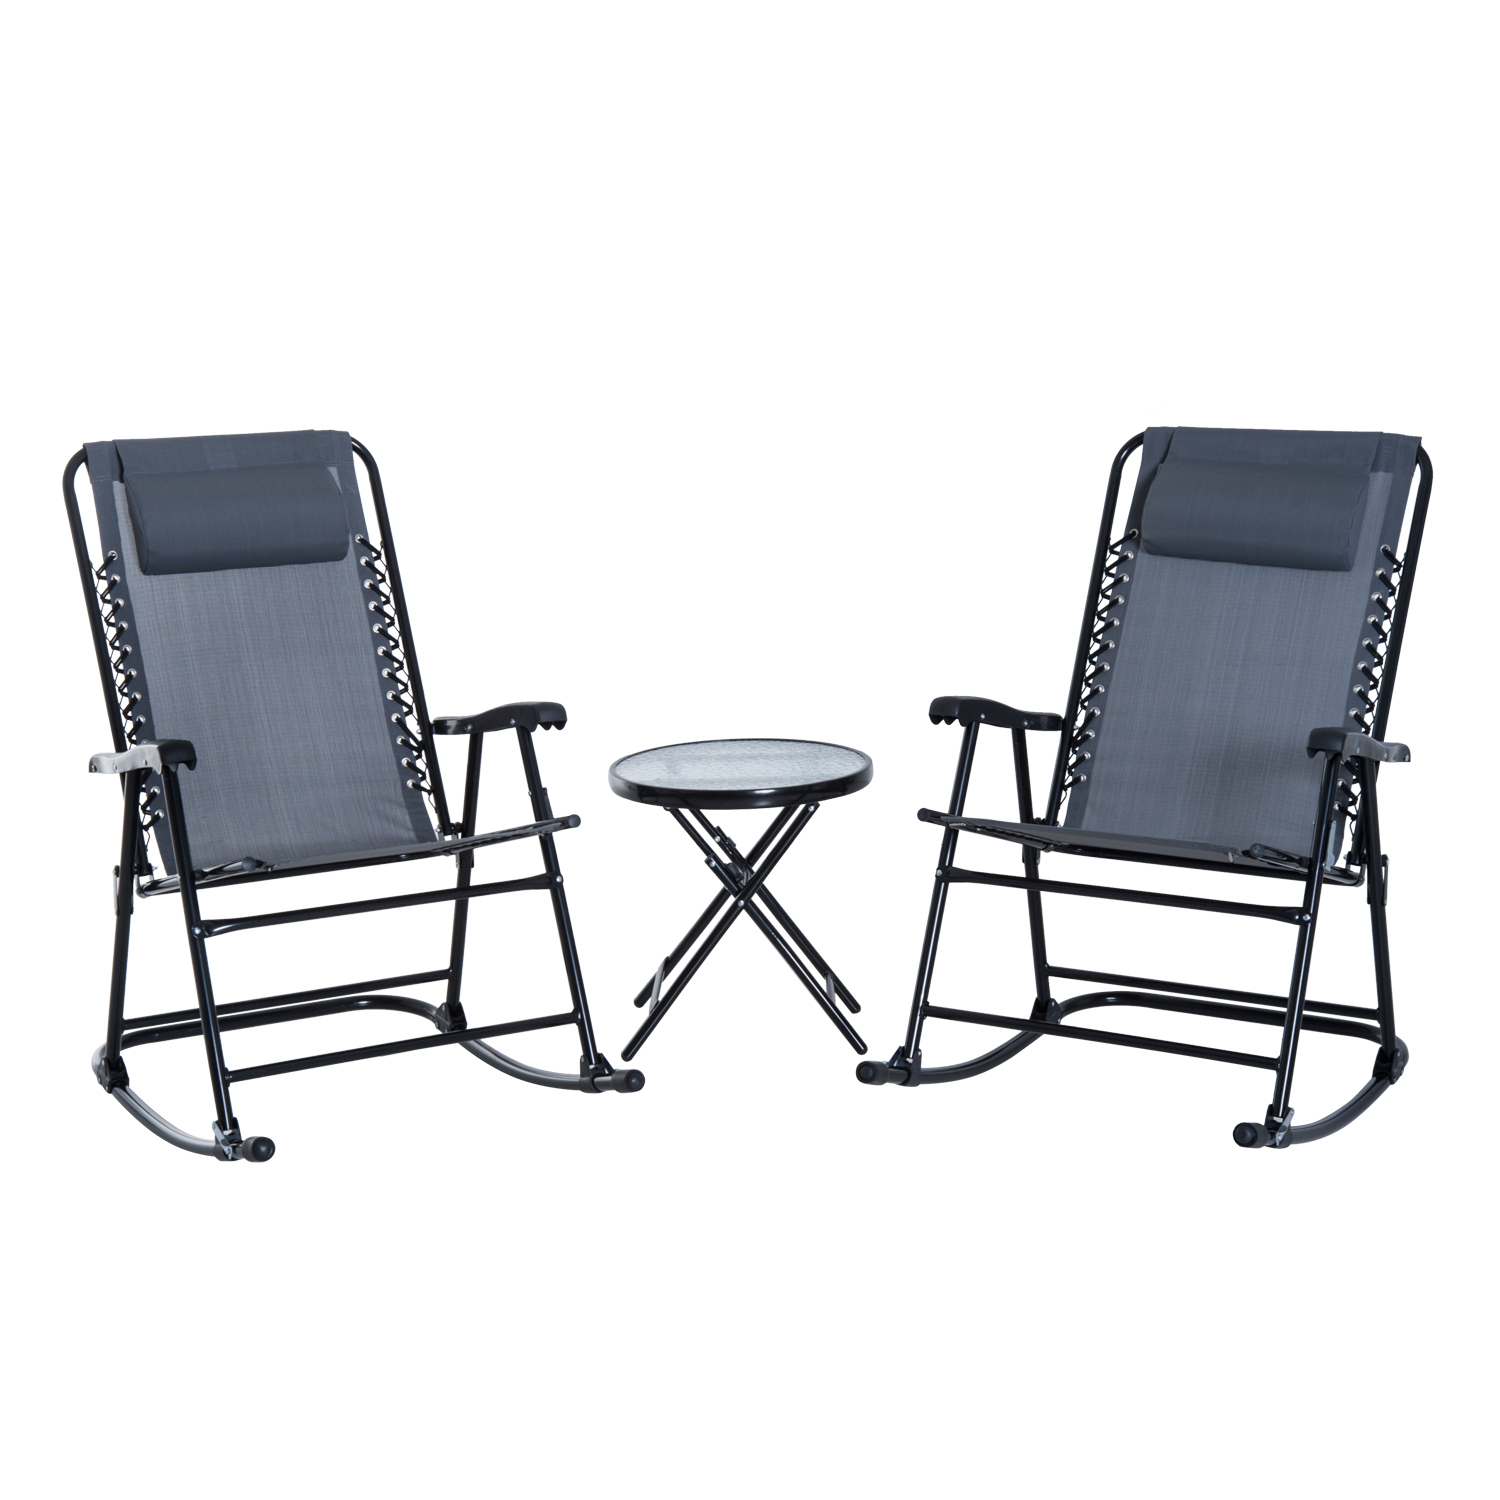 Outdoor Rocking Chair Set Outsunny Folding Outdoor Rocking Chair Set With Side Table